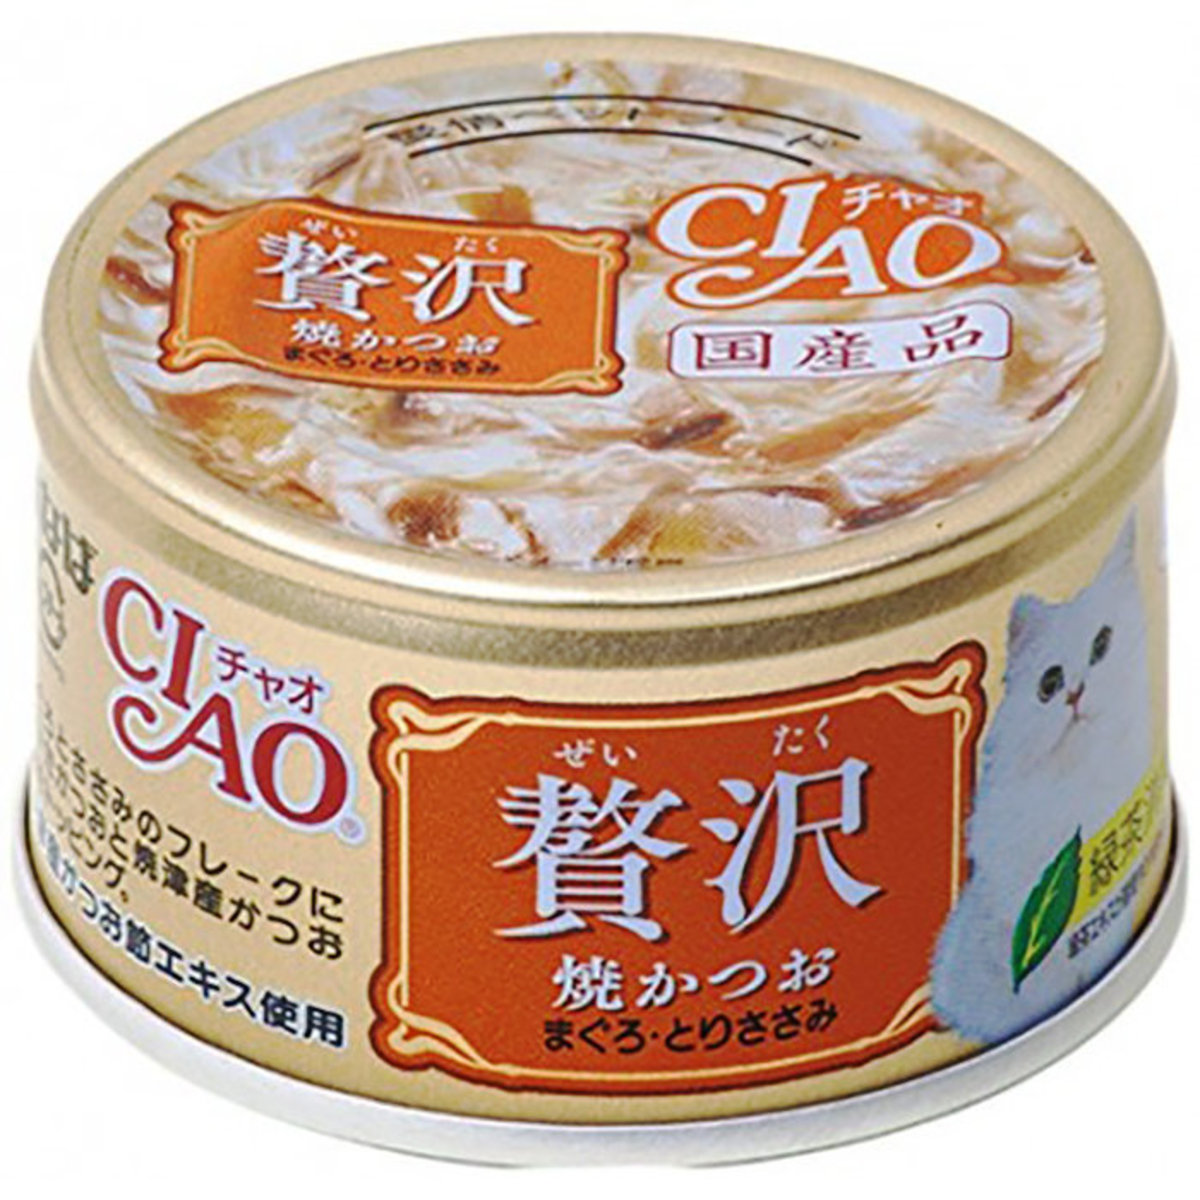 CIAO Luxury Canned Cat Food - Grilled Bonito Tuna Chicken 80g